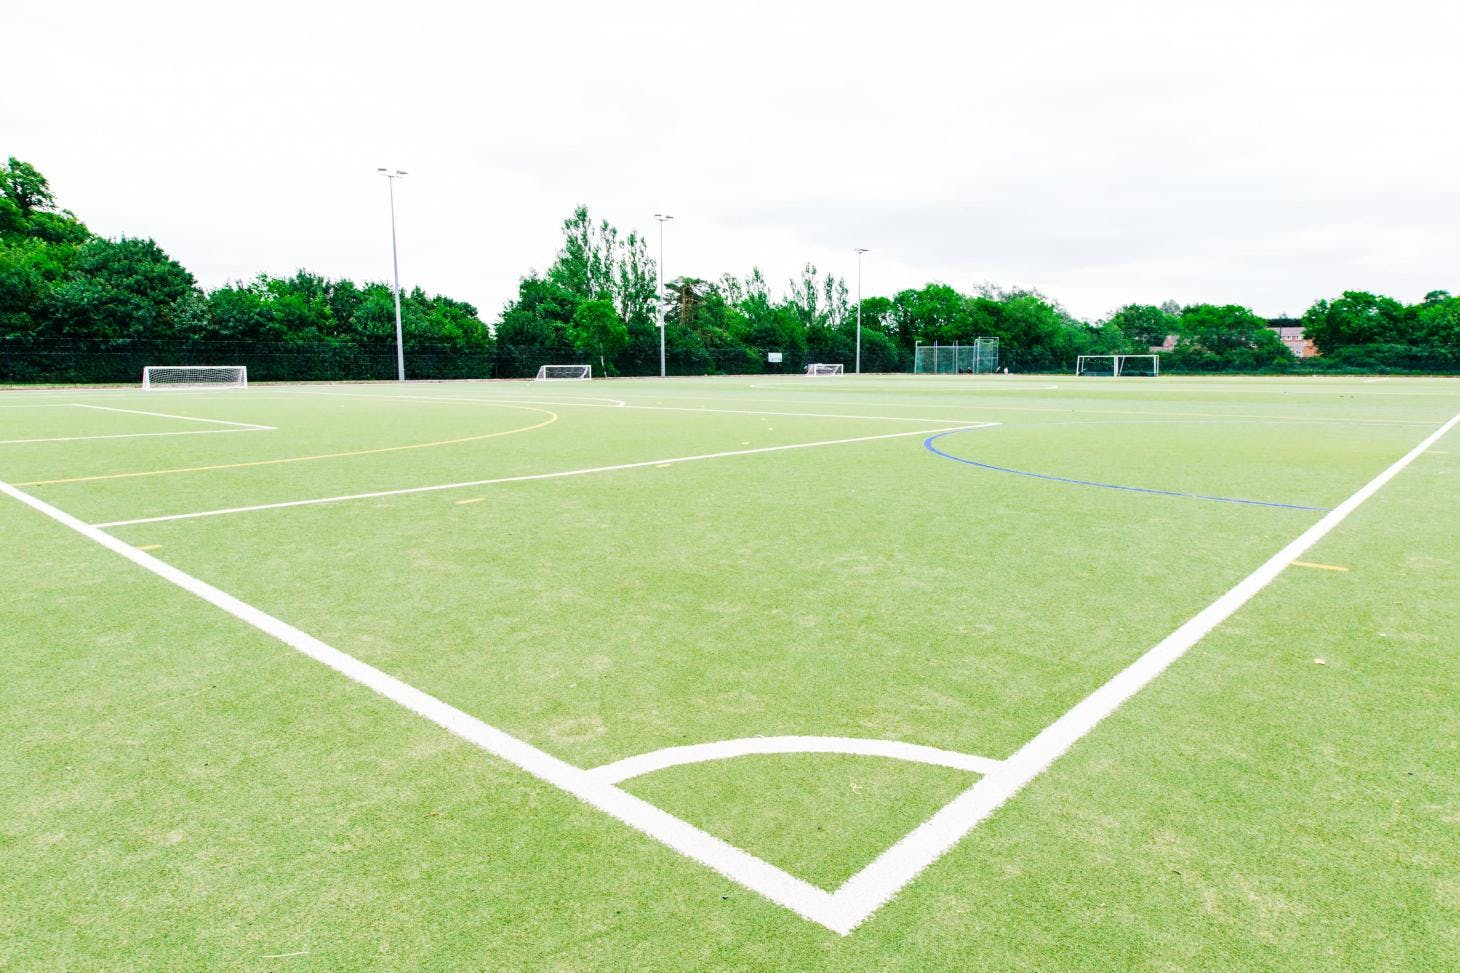 Swan Pool and Leisure Centre 11 a side | Astroturf football pitch